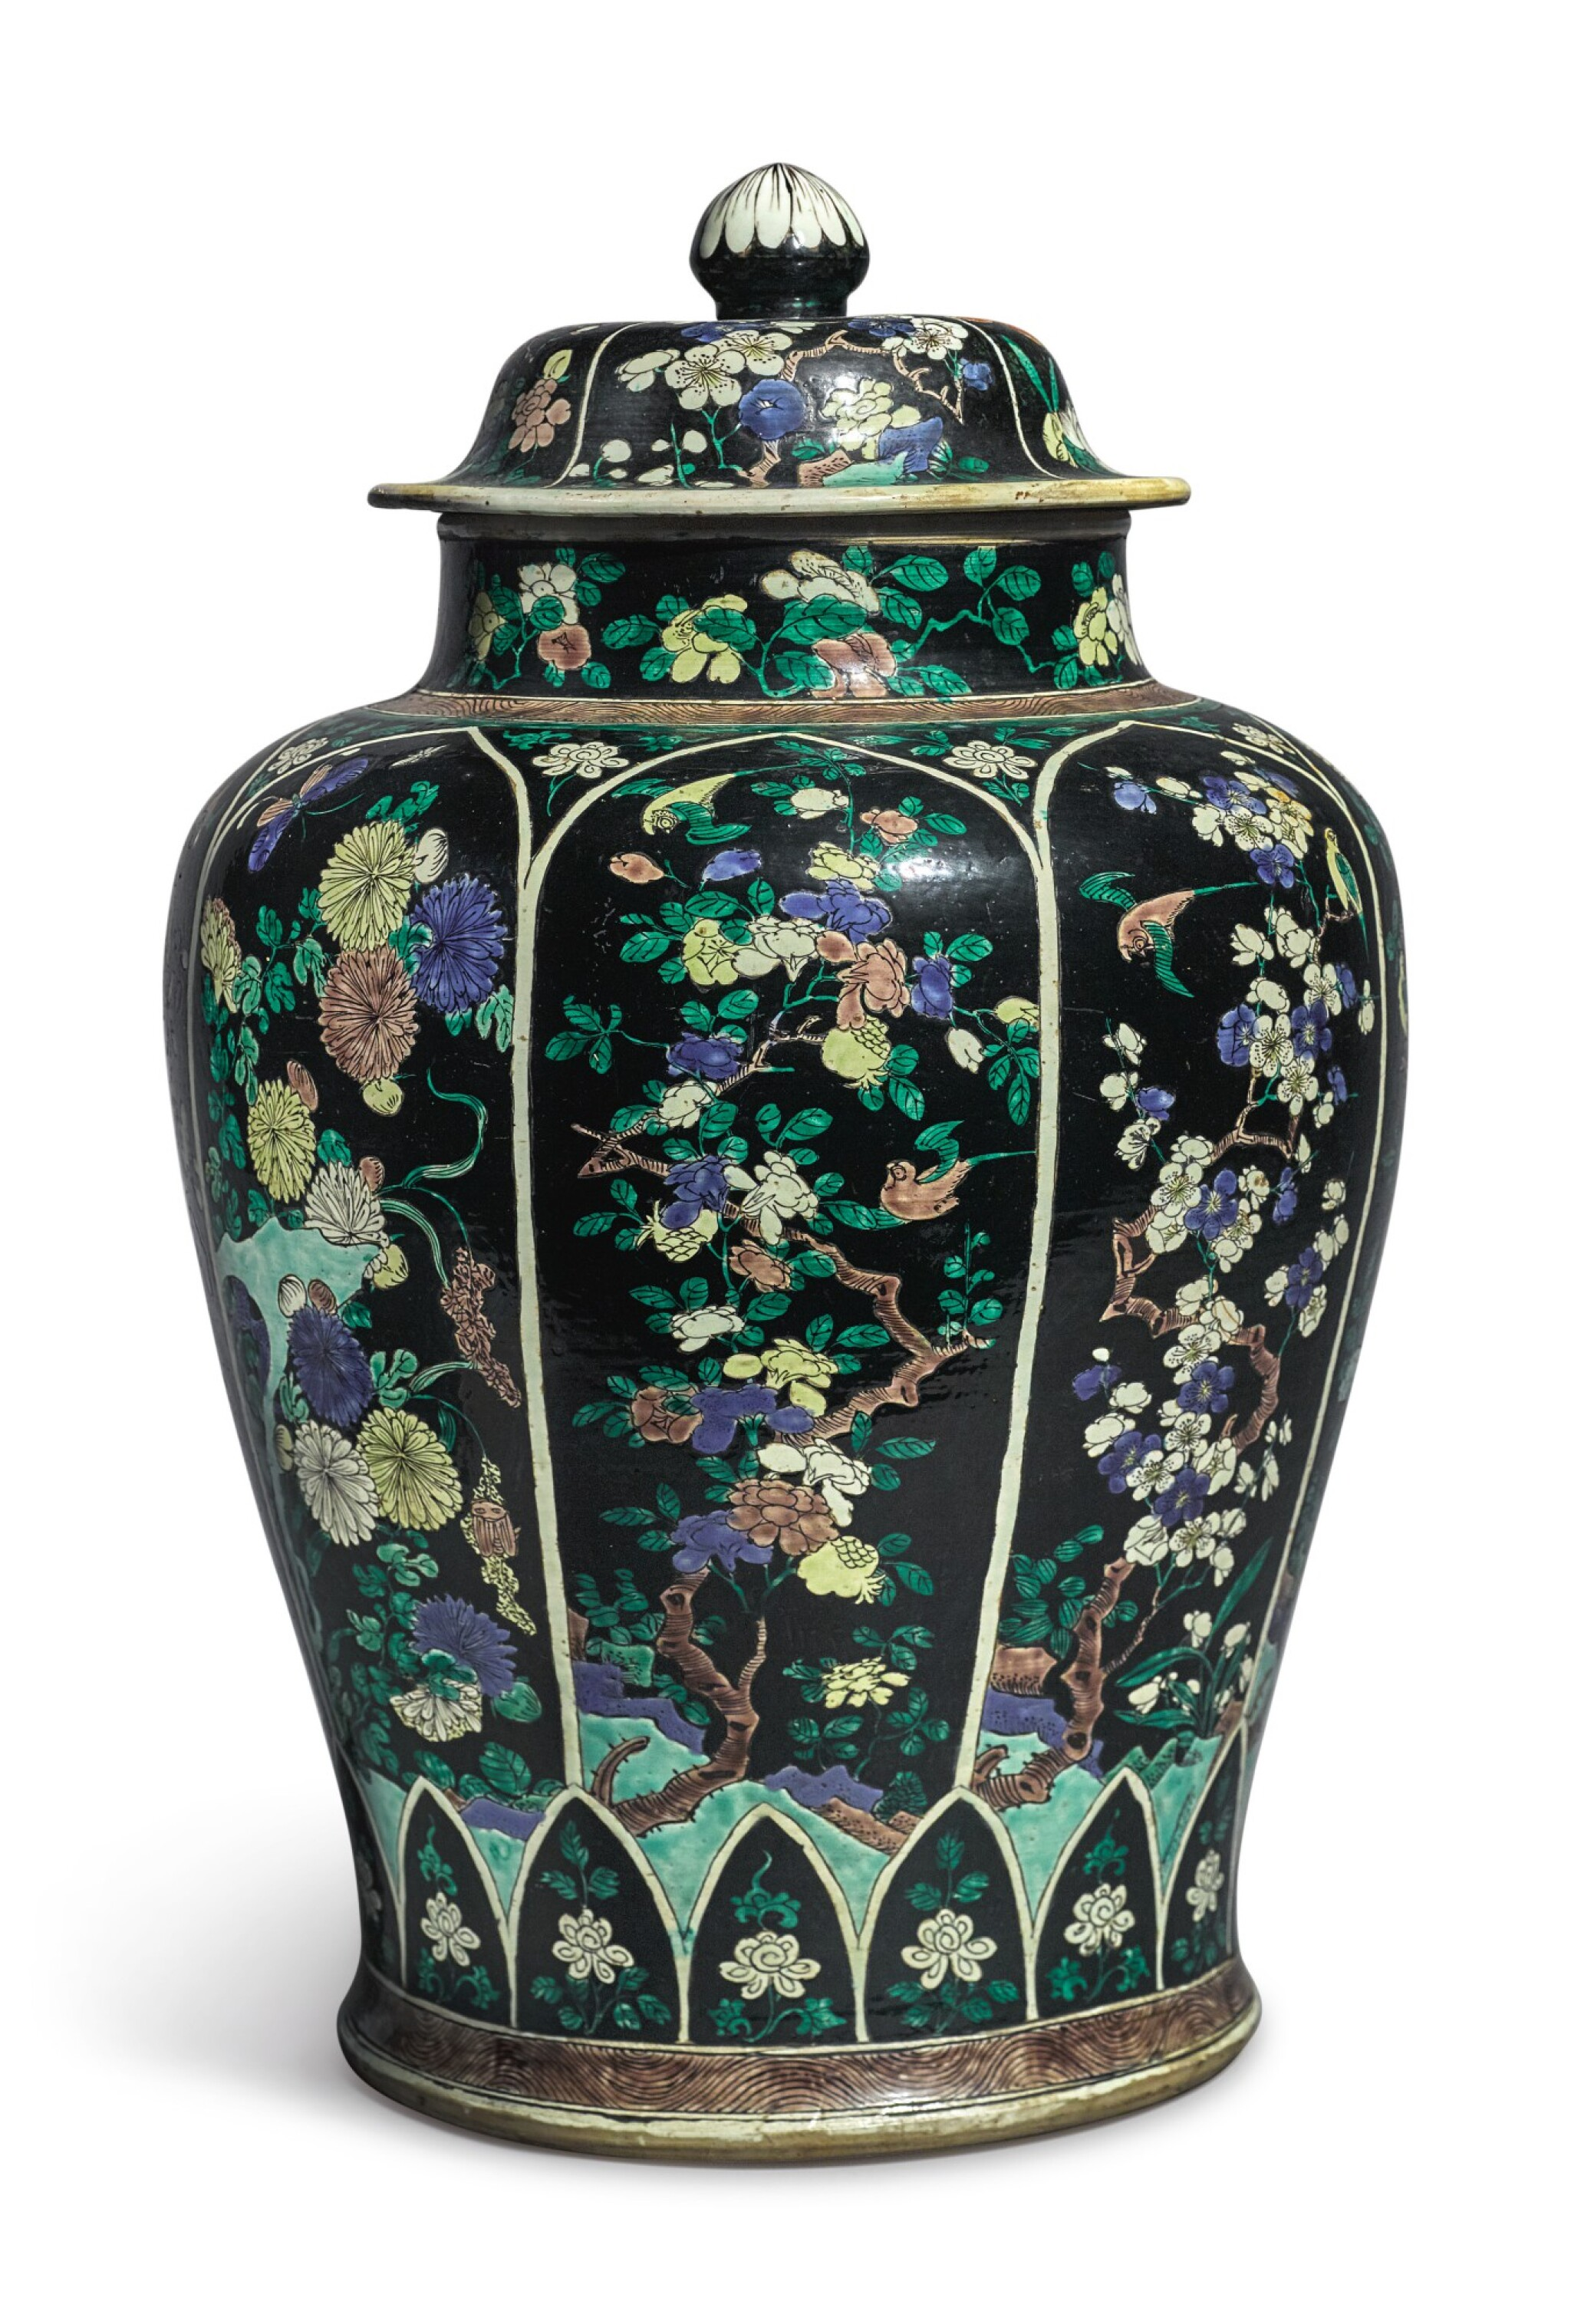 View 1 of Lot 1035. A LARGE FAMILLE-NOIRE 'BIRD AND FLOWER' BALUSTER JAR AND COVER, THE PORCELAIN 18TH CENTURY, THE ENAMELS LATER-ADDED.